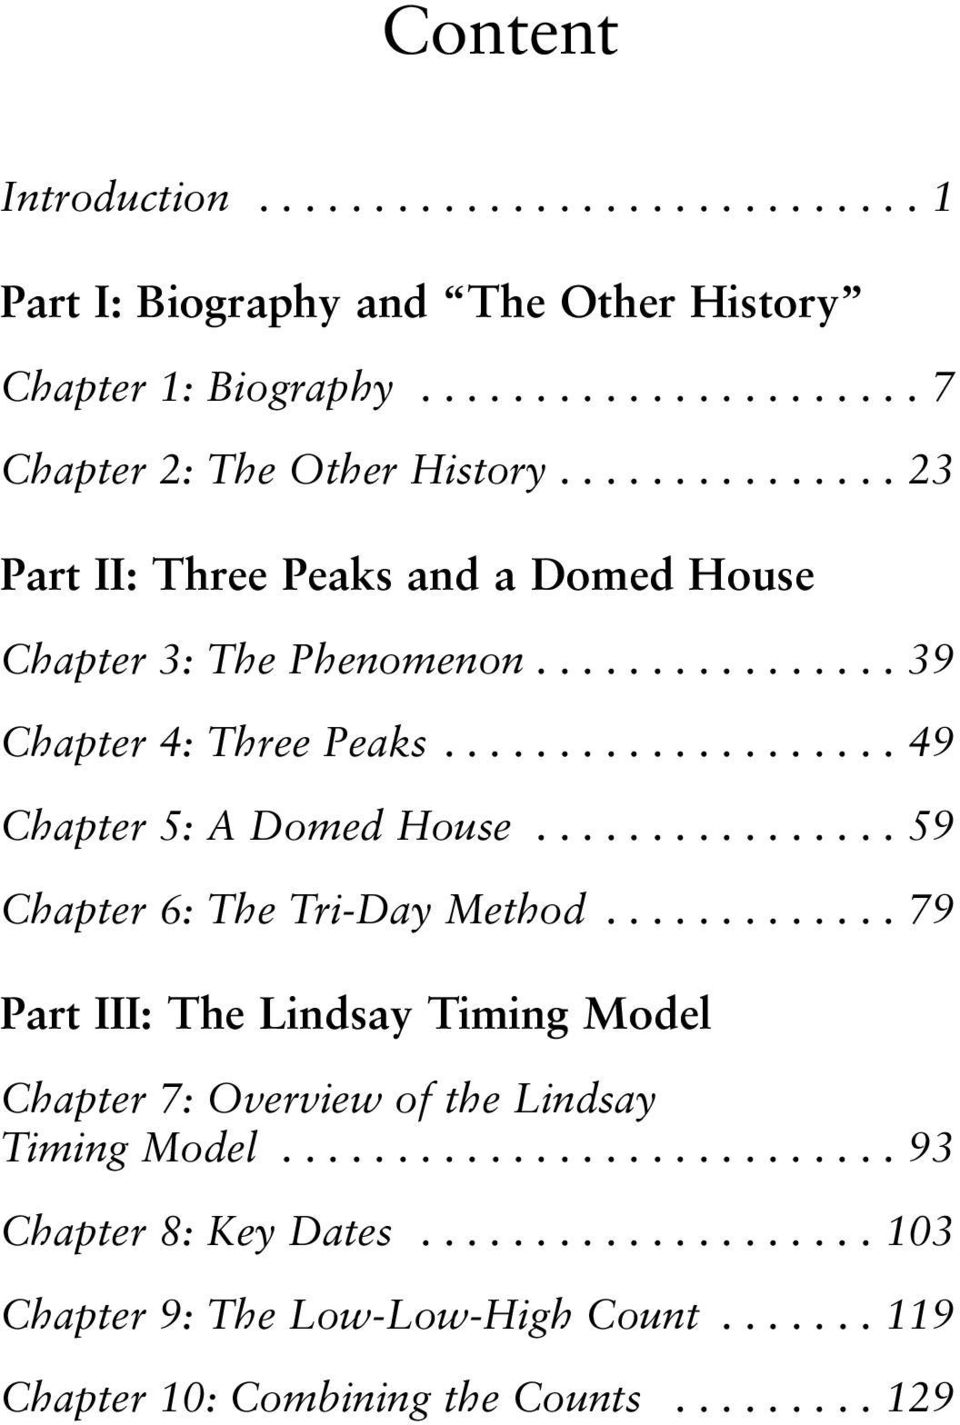 ............... 59 Chapter 6: The Tri-Day Method............. 79 Part III: The Lindsay Timing Model Chapter 7: Overview of the Lindsay Timing Model.